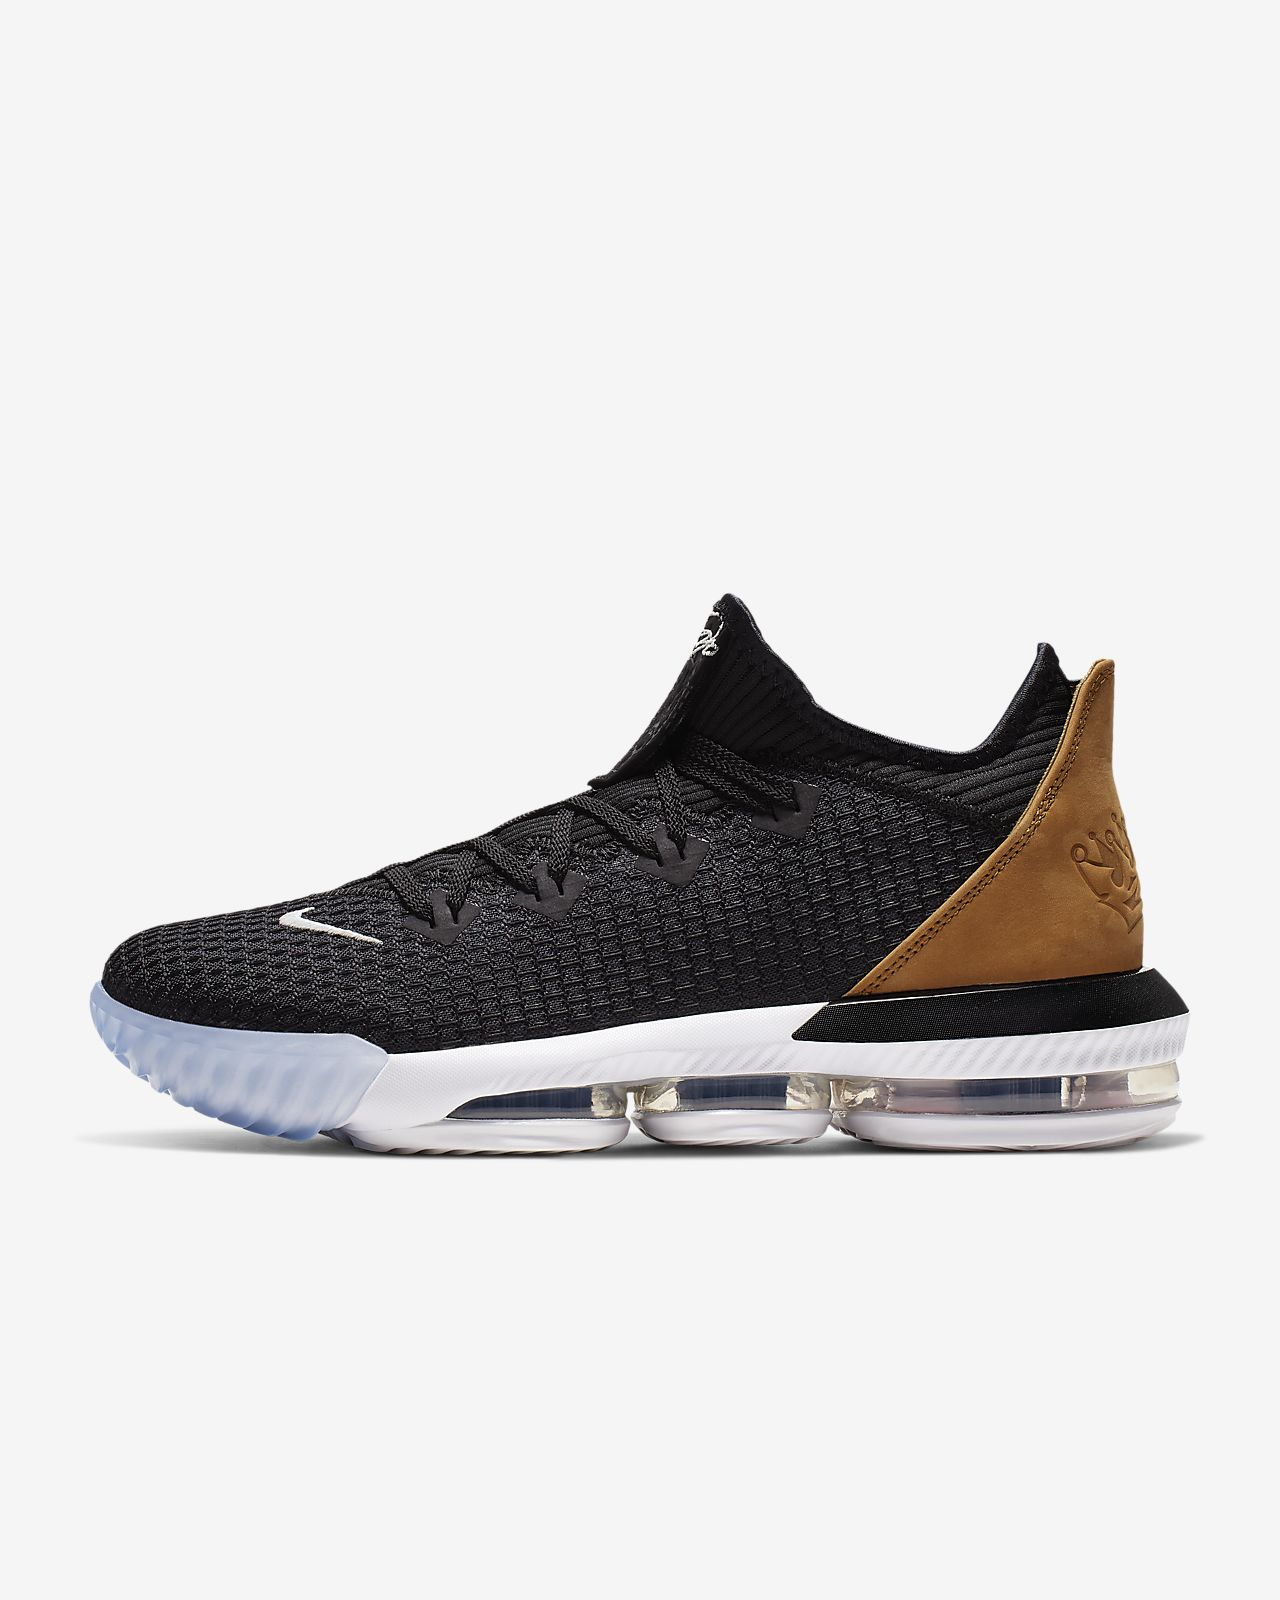 LeBron 16 Low LeBron 16 basketskoNO LeBron 16 basketskoNO Low basketskoNO Low 29IEDH